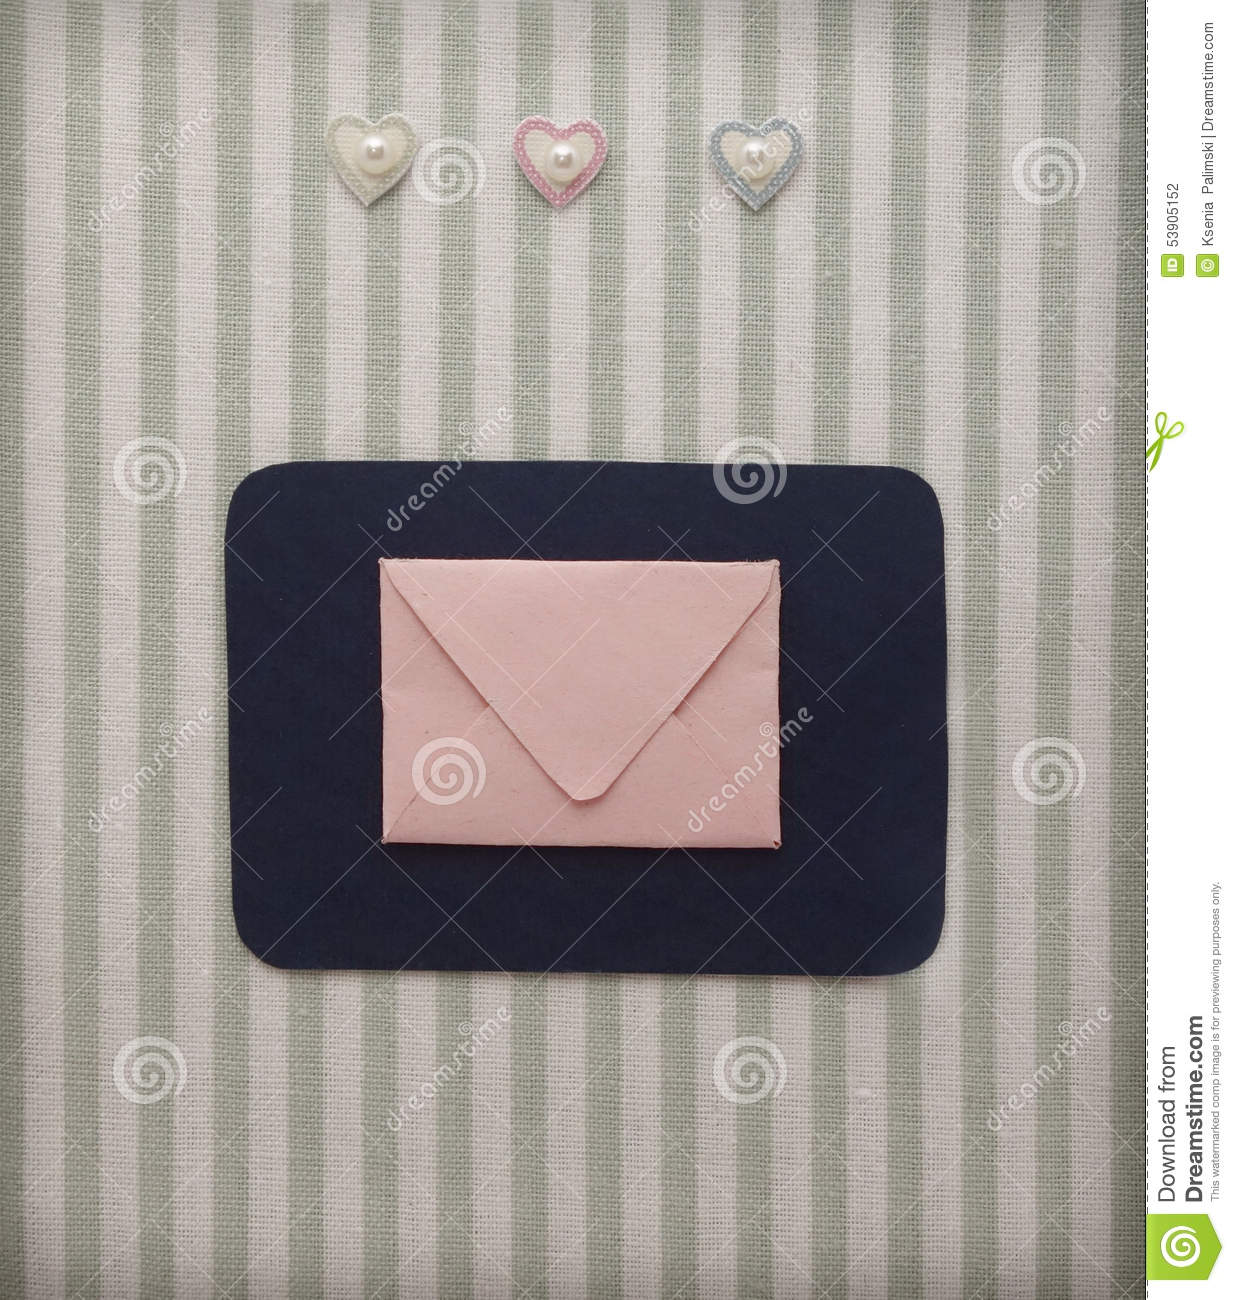 Textile Stock Distributors Mail: Retro Style Album Page With Mail Envelope And Hearts